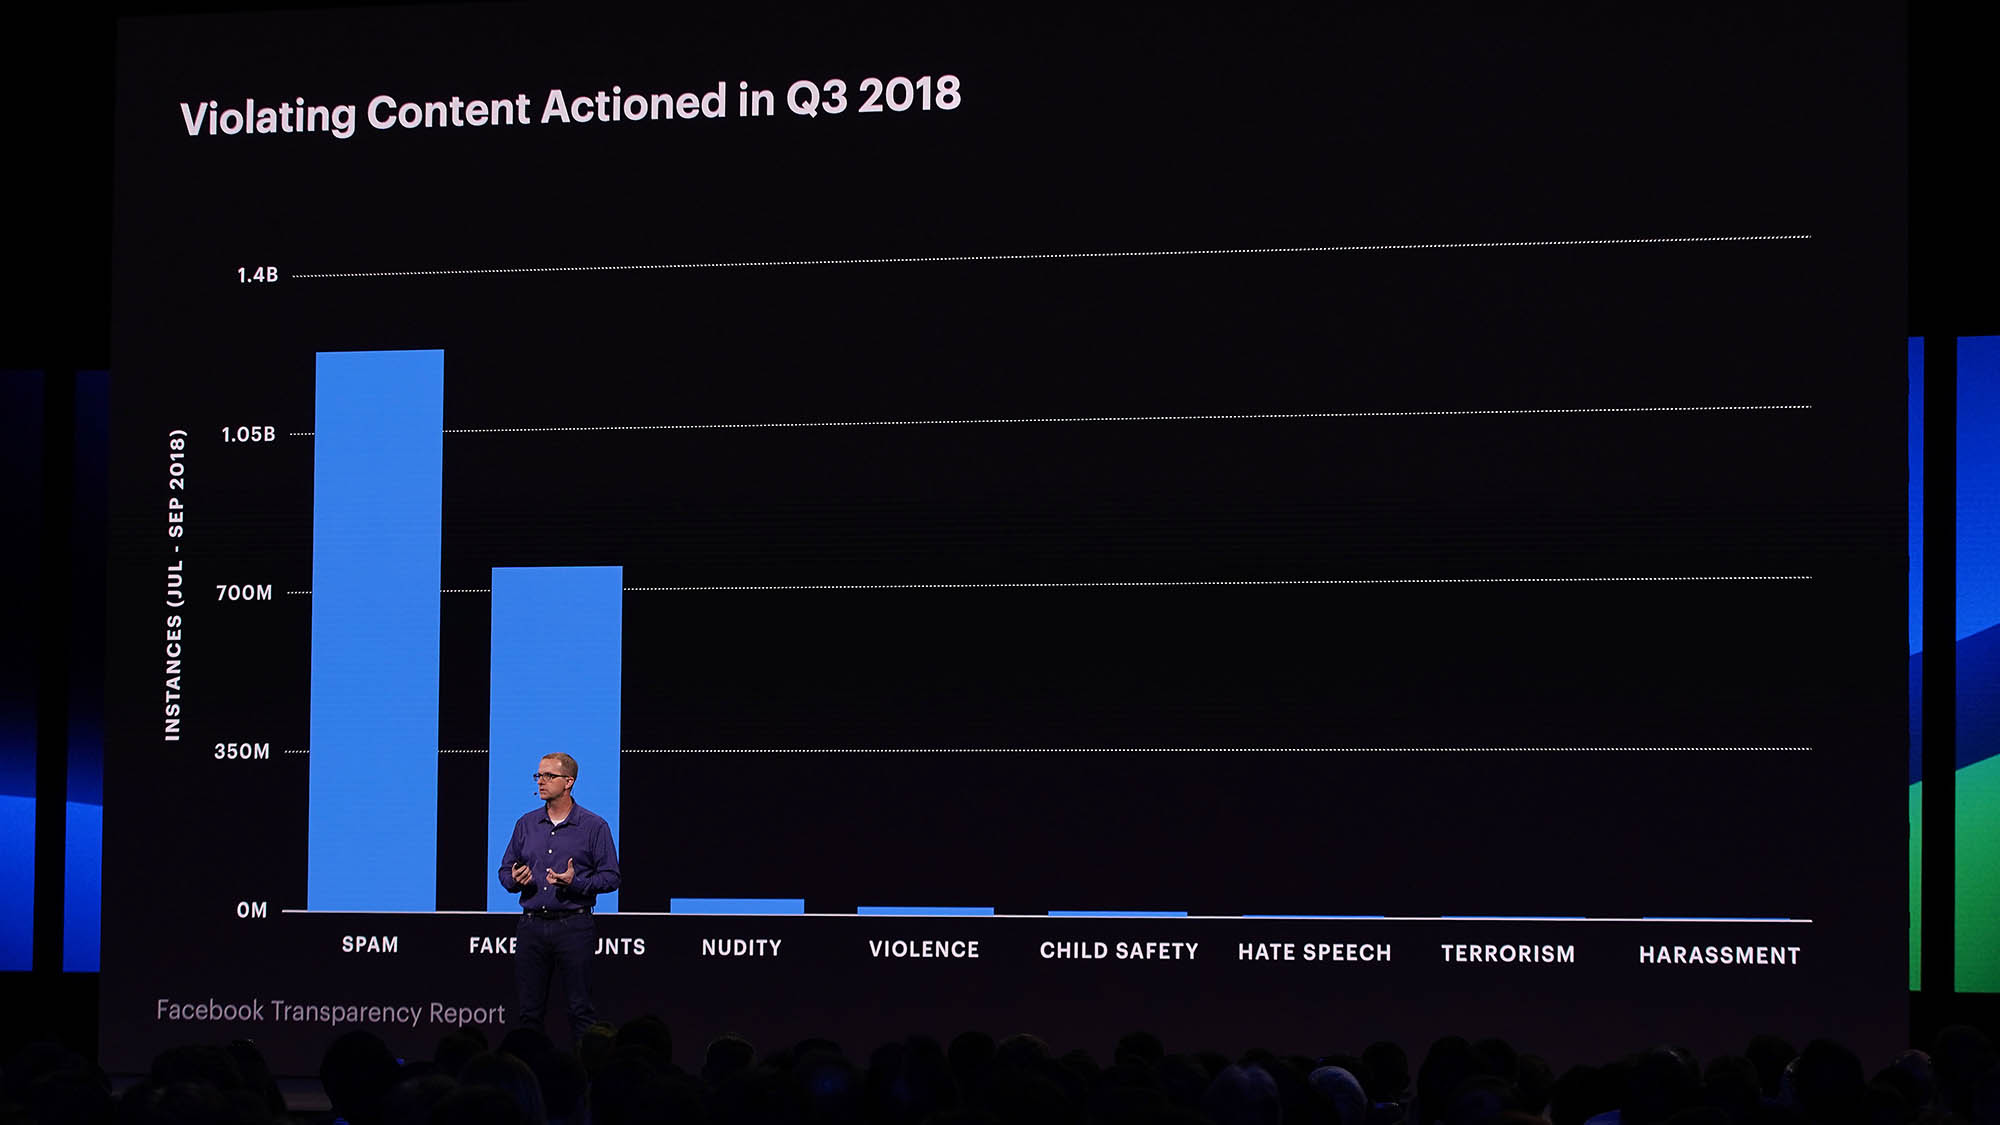 F8 2019 Day 2 keynote and session videos - Chief Technology Officer Mike Schroepfer speaking at F8